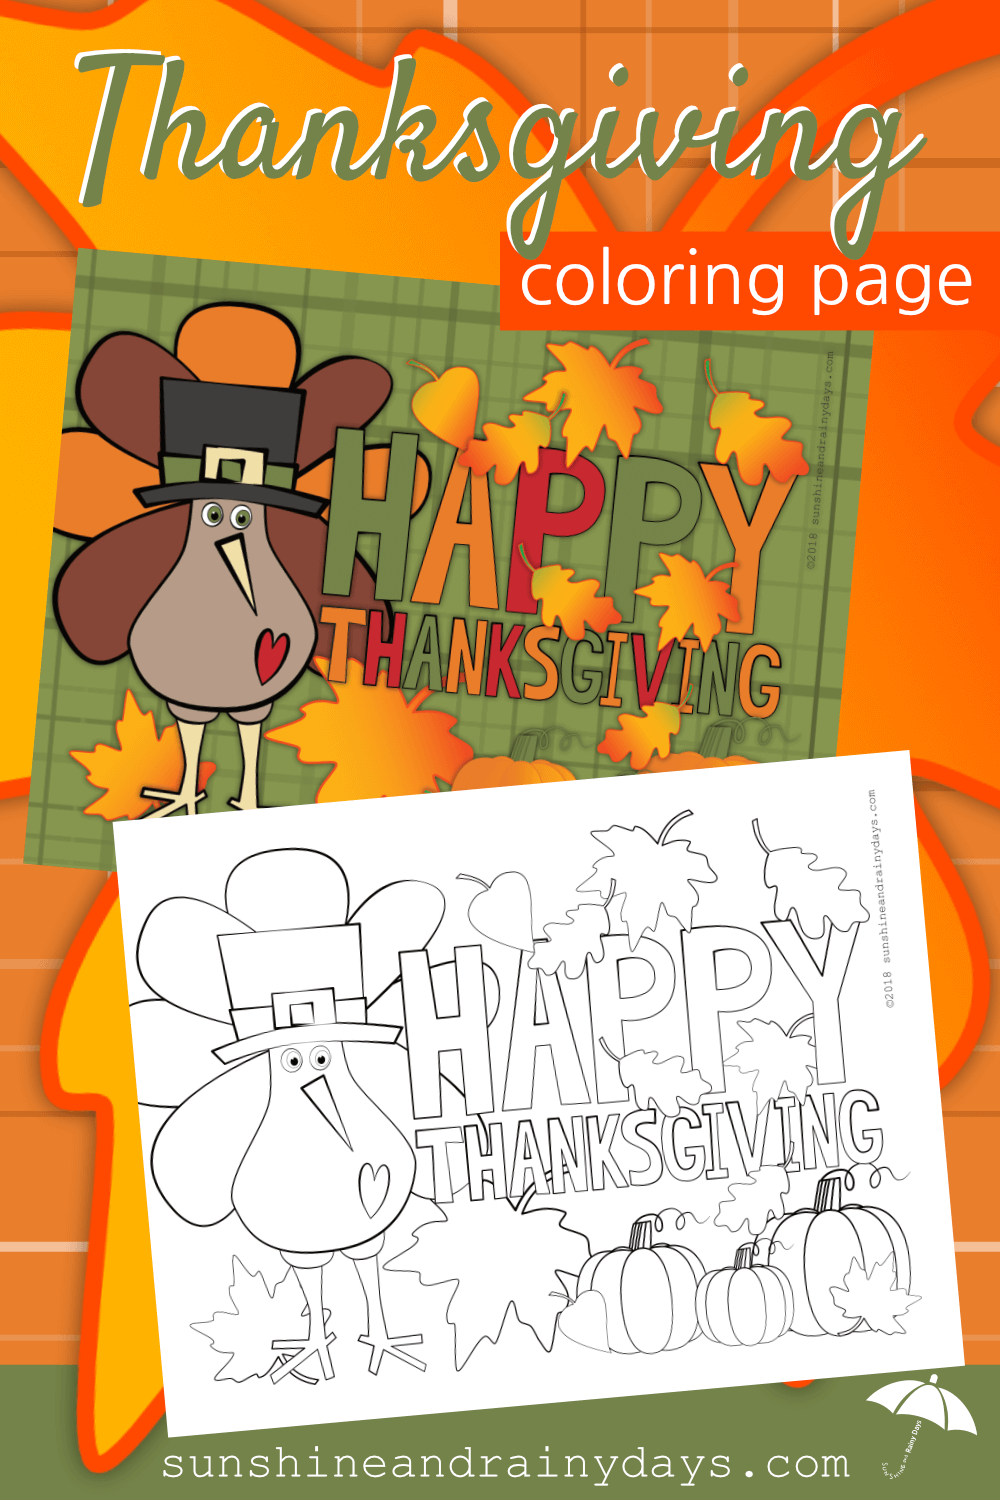 Are you ready to embrace all things Thanksgiving? Our Thanksgiving Coloring Page will not only help you decorate for the Holiday but it is a great stress reliever too! Thanksgiving Printables | Thanksgiving Coloring Pages | Thanksgiving Coloring Pages For Adults | Thanksgiving Coloring Sheets | #Thanksgiving #ThanksgivingPrintables #ThanksgivingDecorations #Printables #SARD